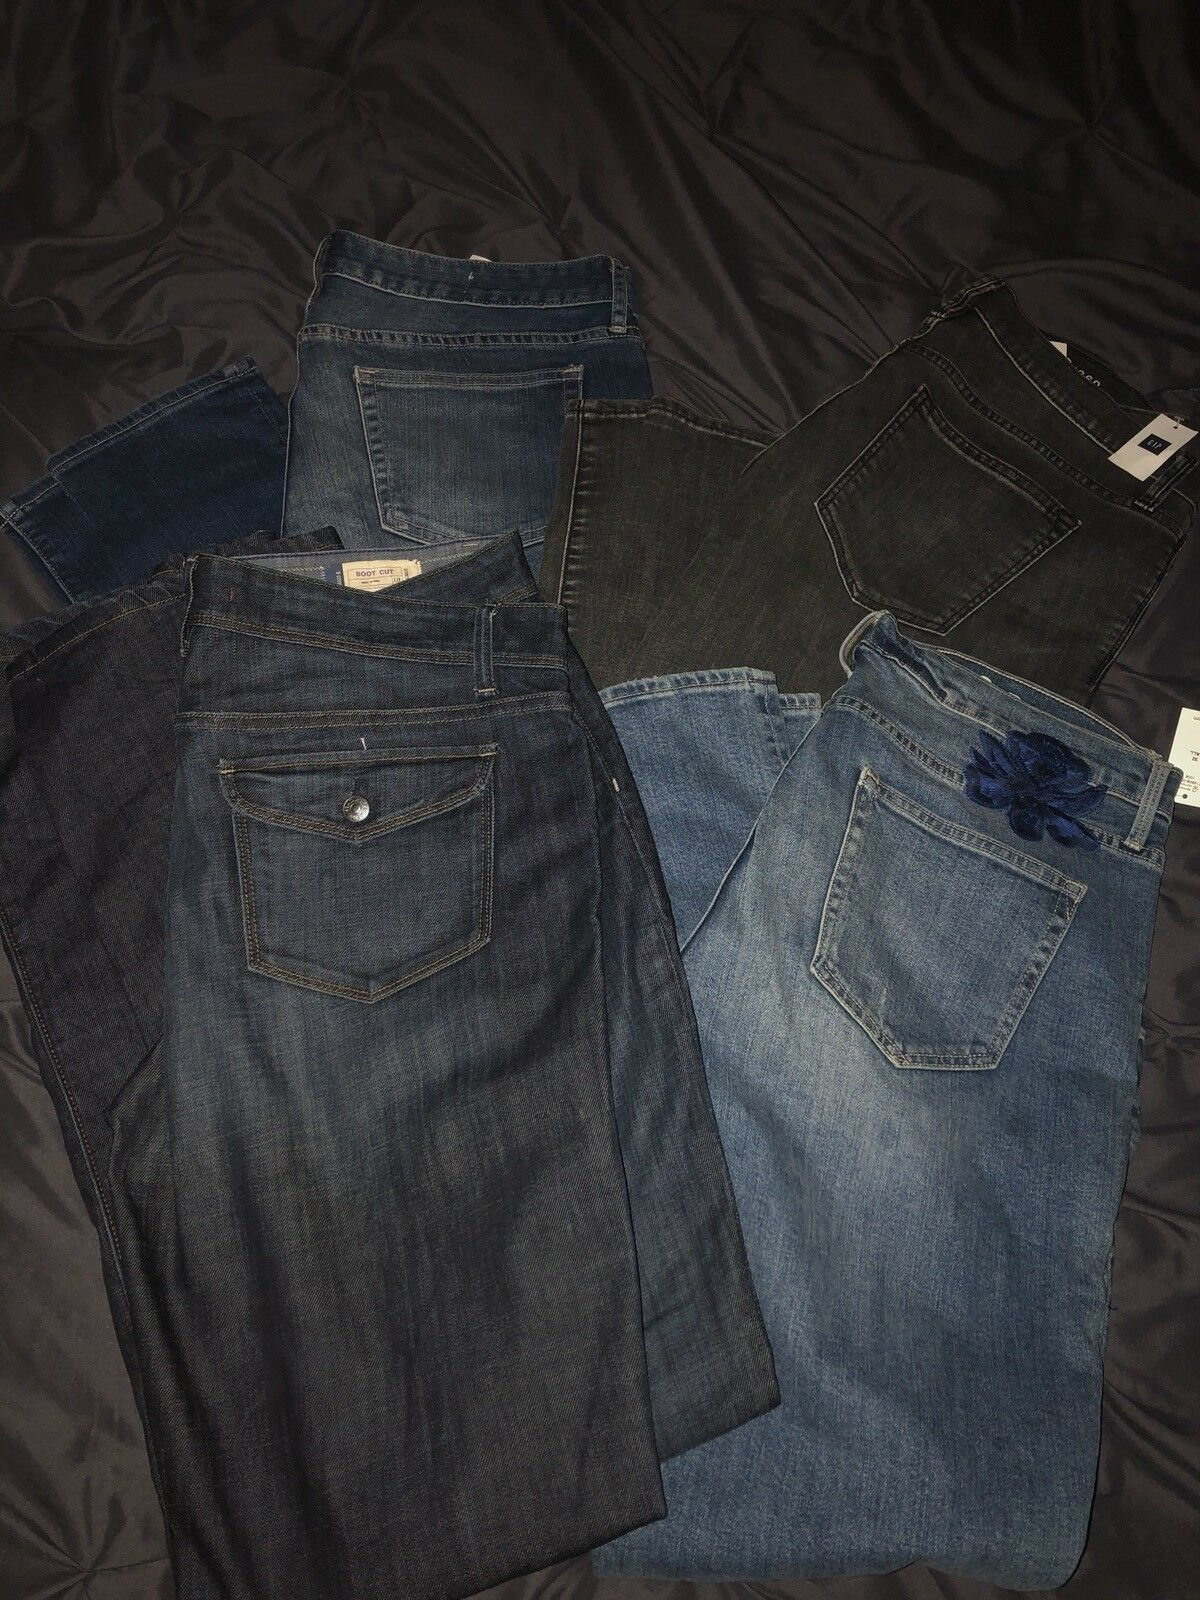 2 Pairs Gap Lot Skinny Jeans Bootcut Jeans Pants  1969 14 32 T Tall